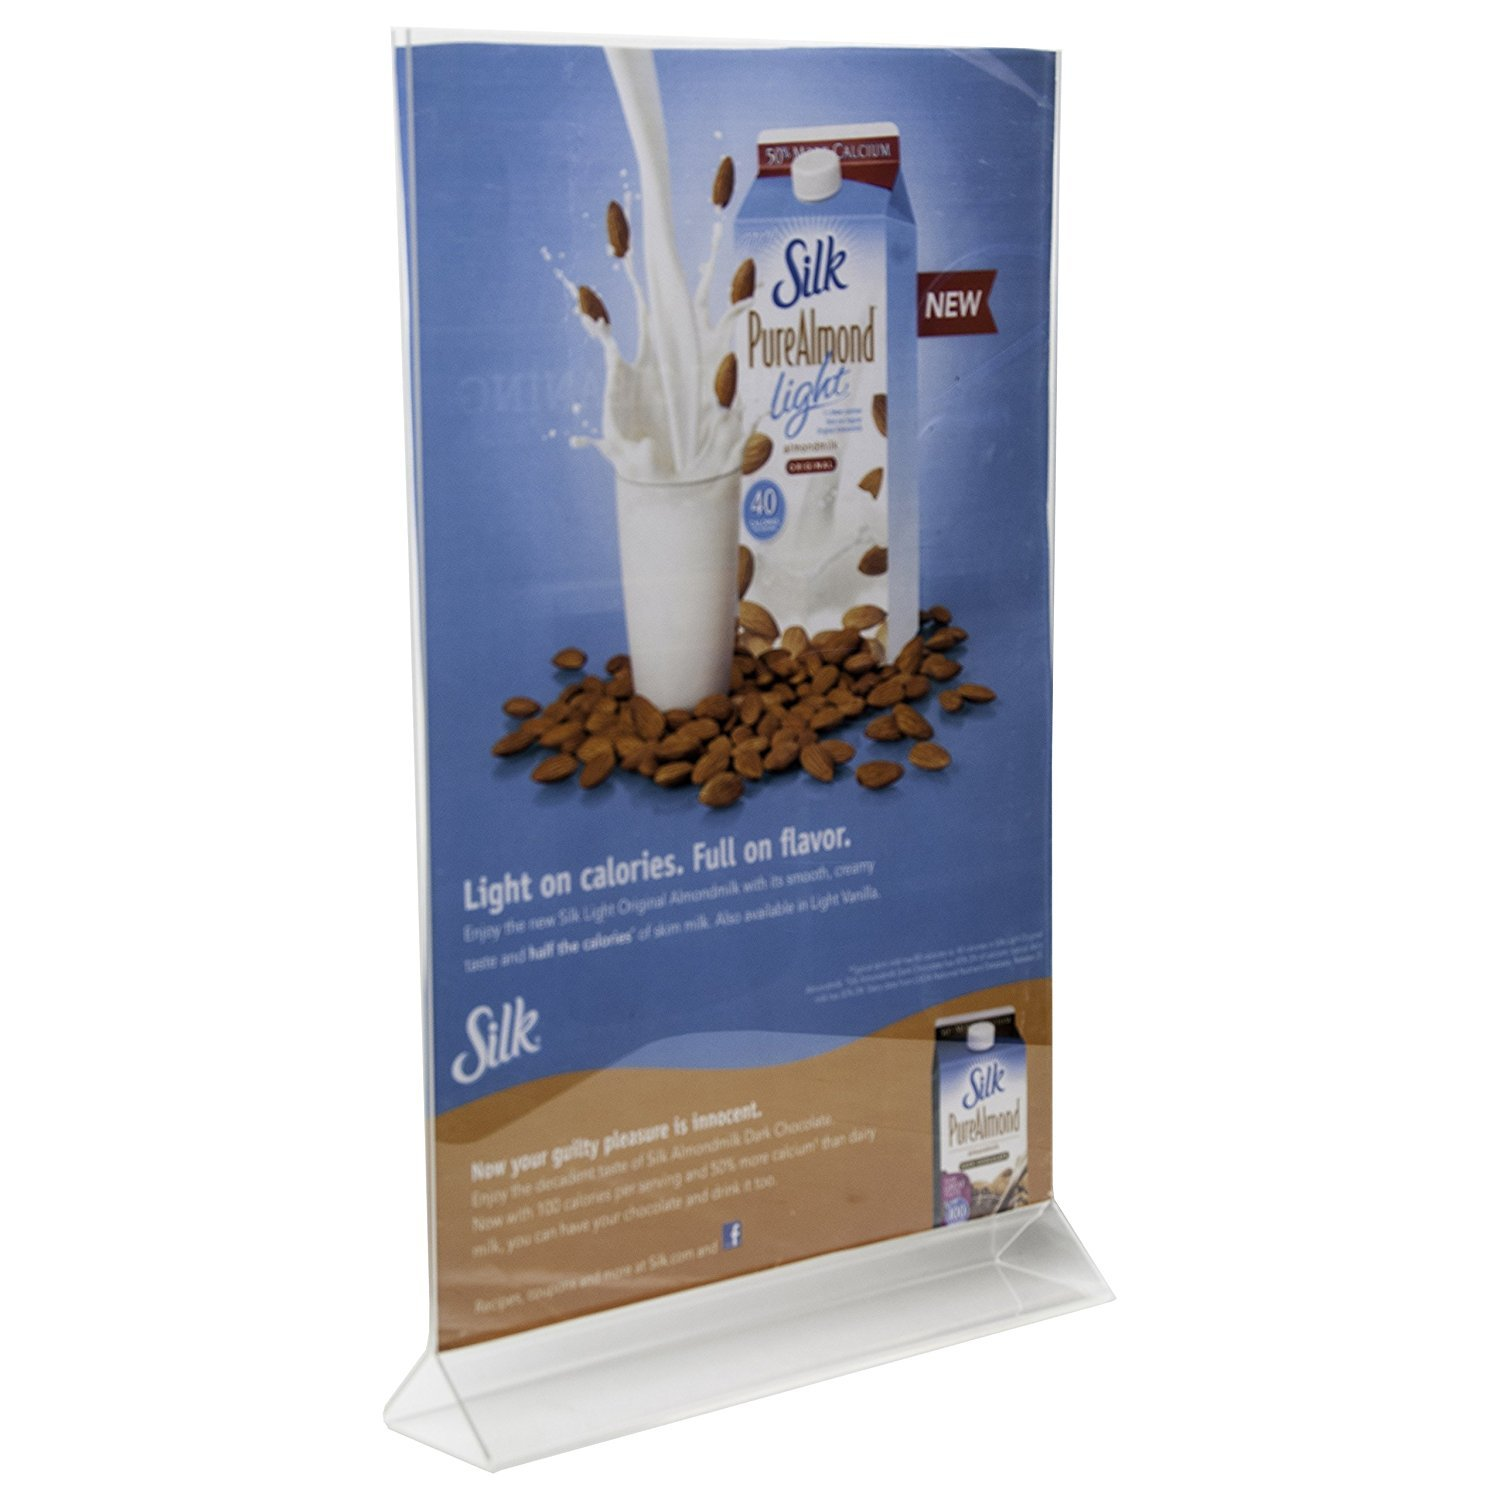 Clear-Ad - LHB-1117 - Double Sided Acrylic Upright Sign Holder 11x17 - Table Menu Card Display Stand - Plastic Picture Frame (Pack of 3)